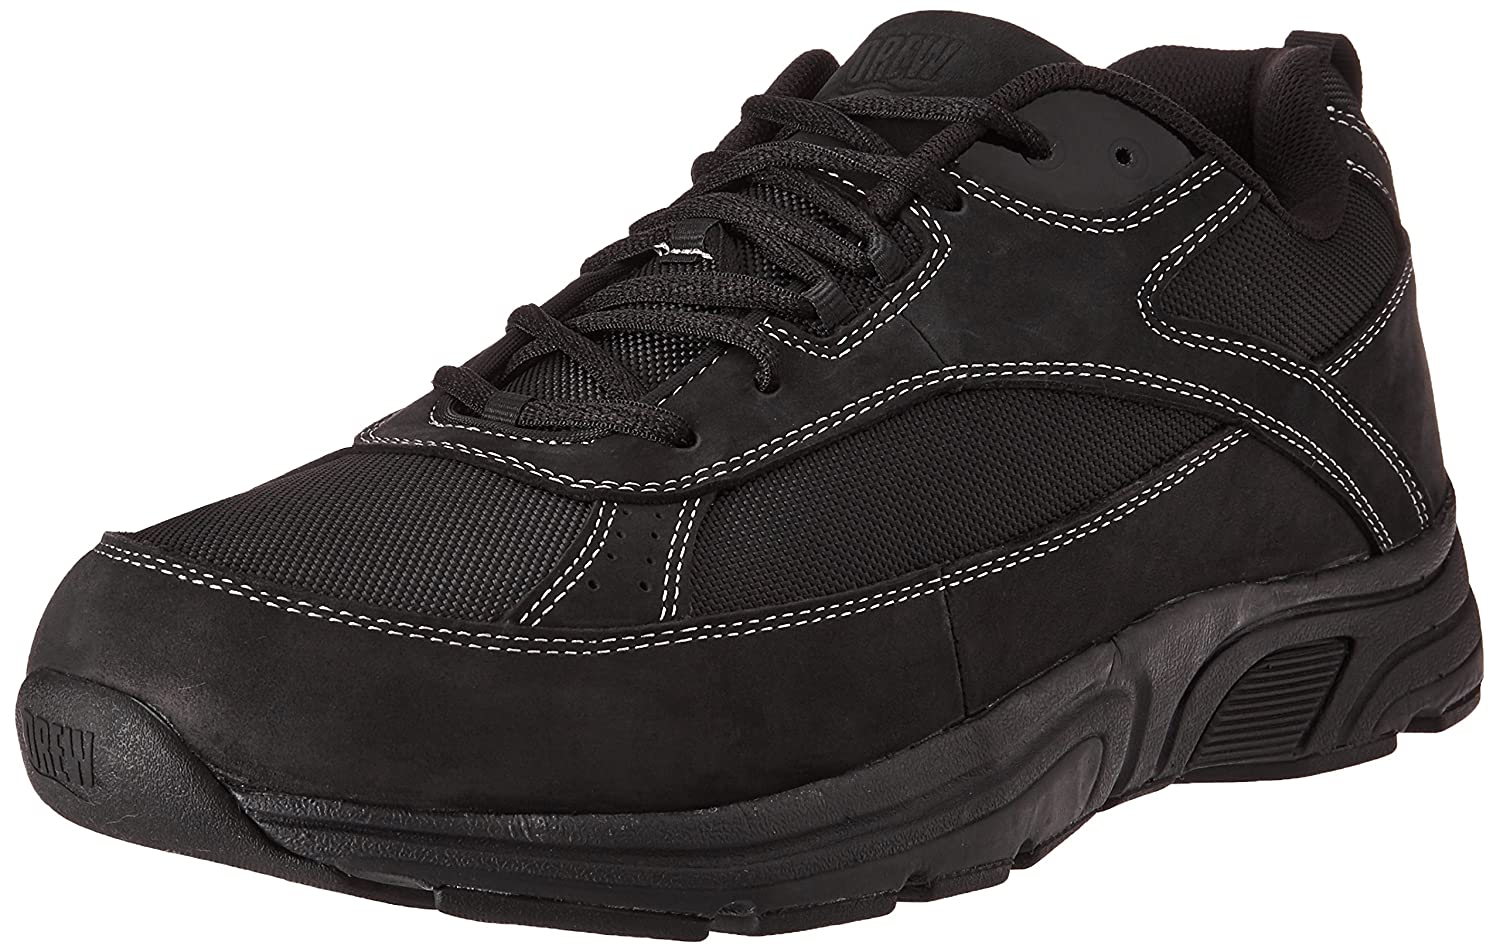 Drew Shoe Men's Aaron Oxford 7.5 D(M) US|Black Leather/Nylon